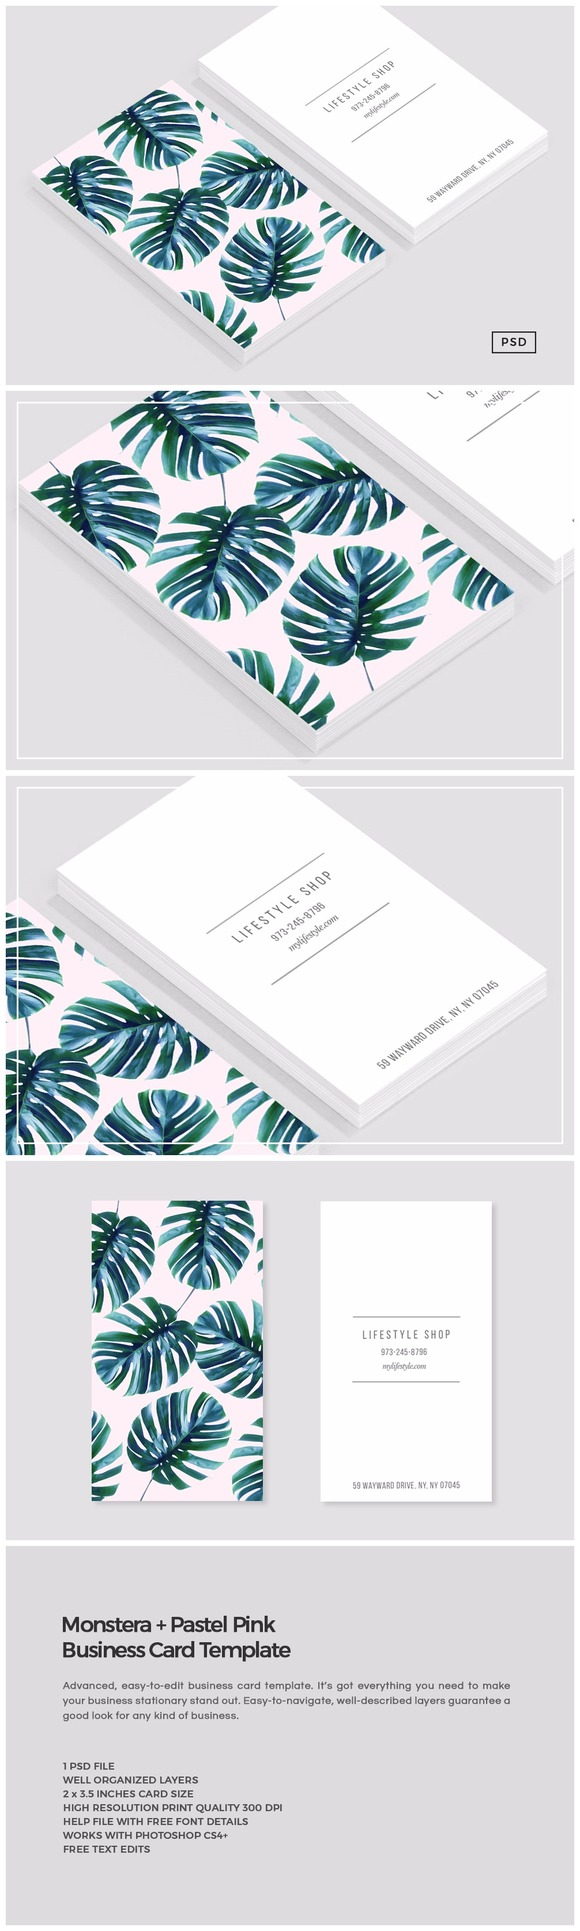 Monstera Pastel Pink Business Card